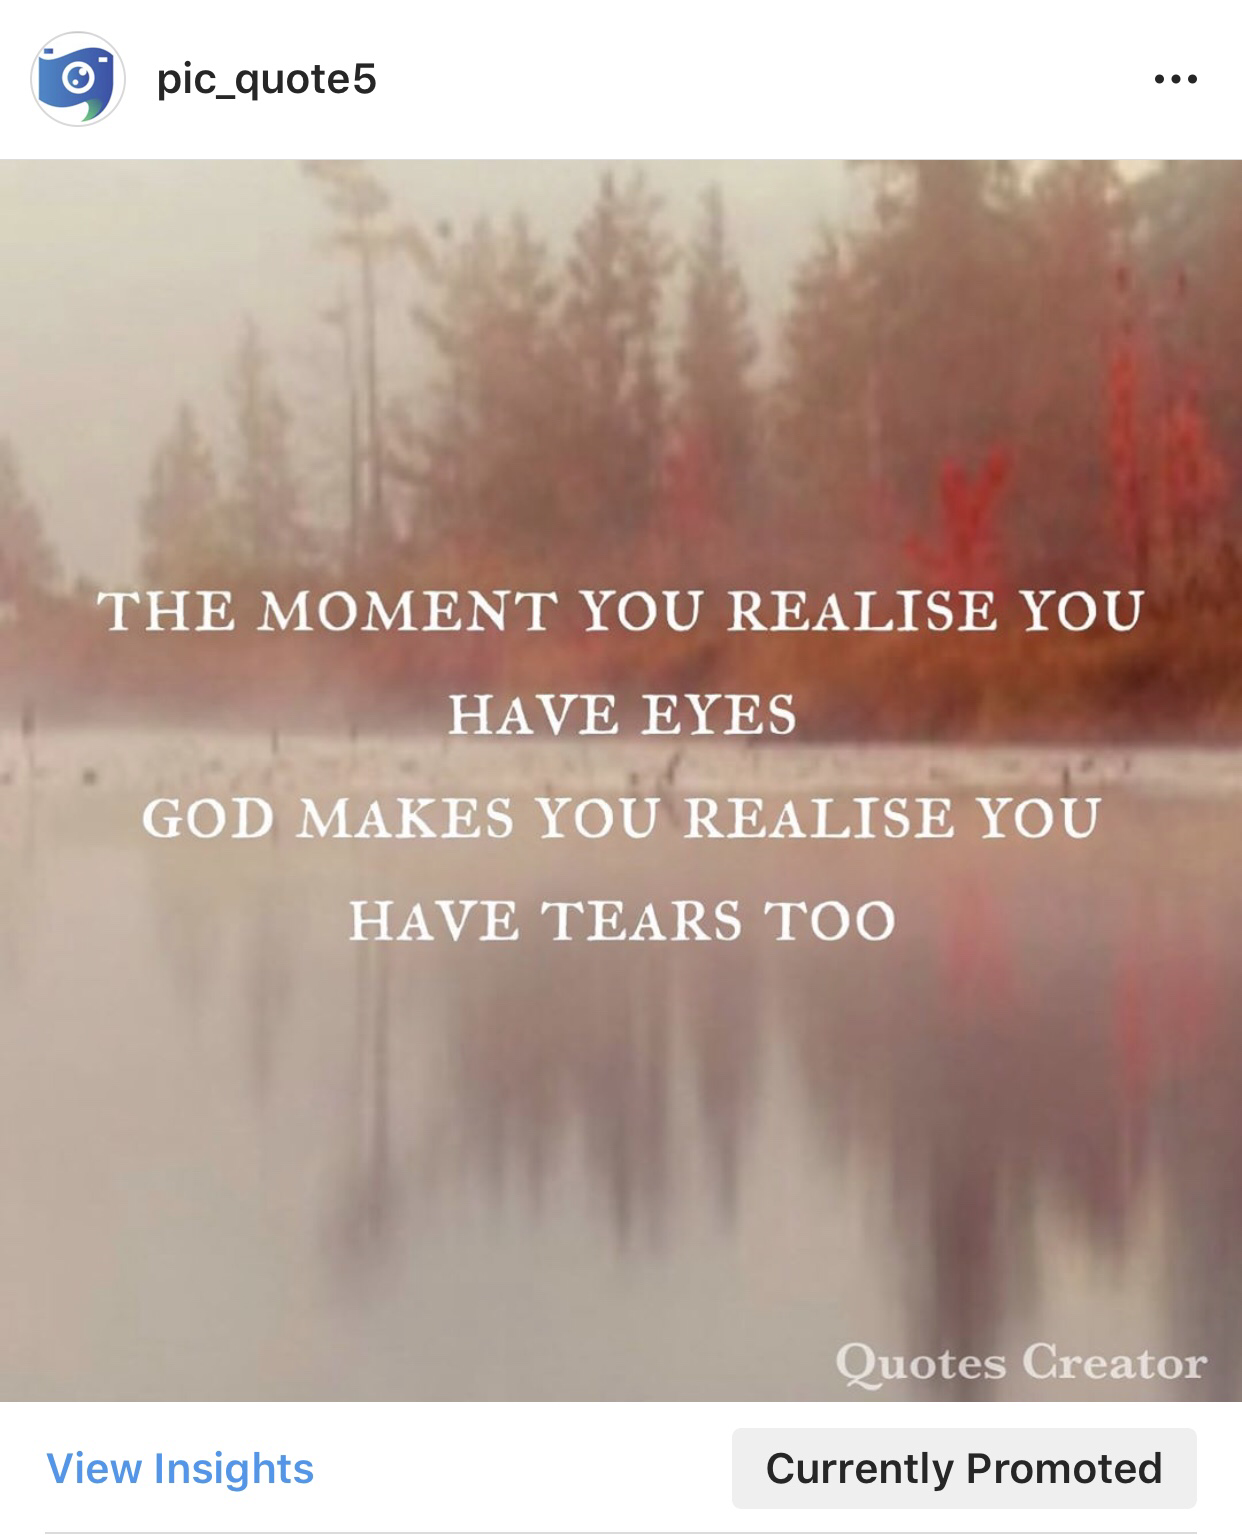 The moment you realise you have eyes-pic quotes 1080*1080